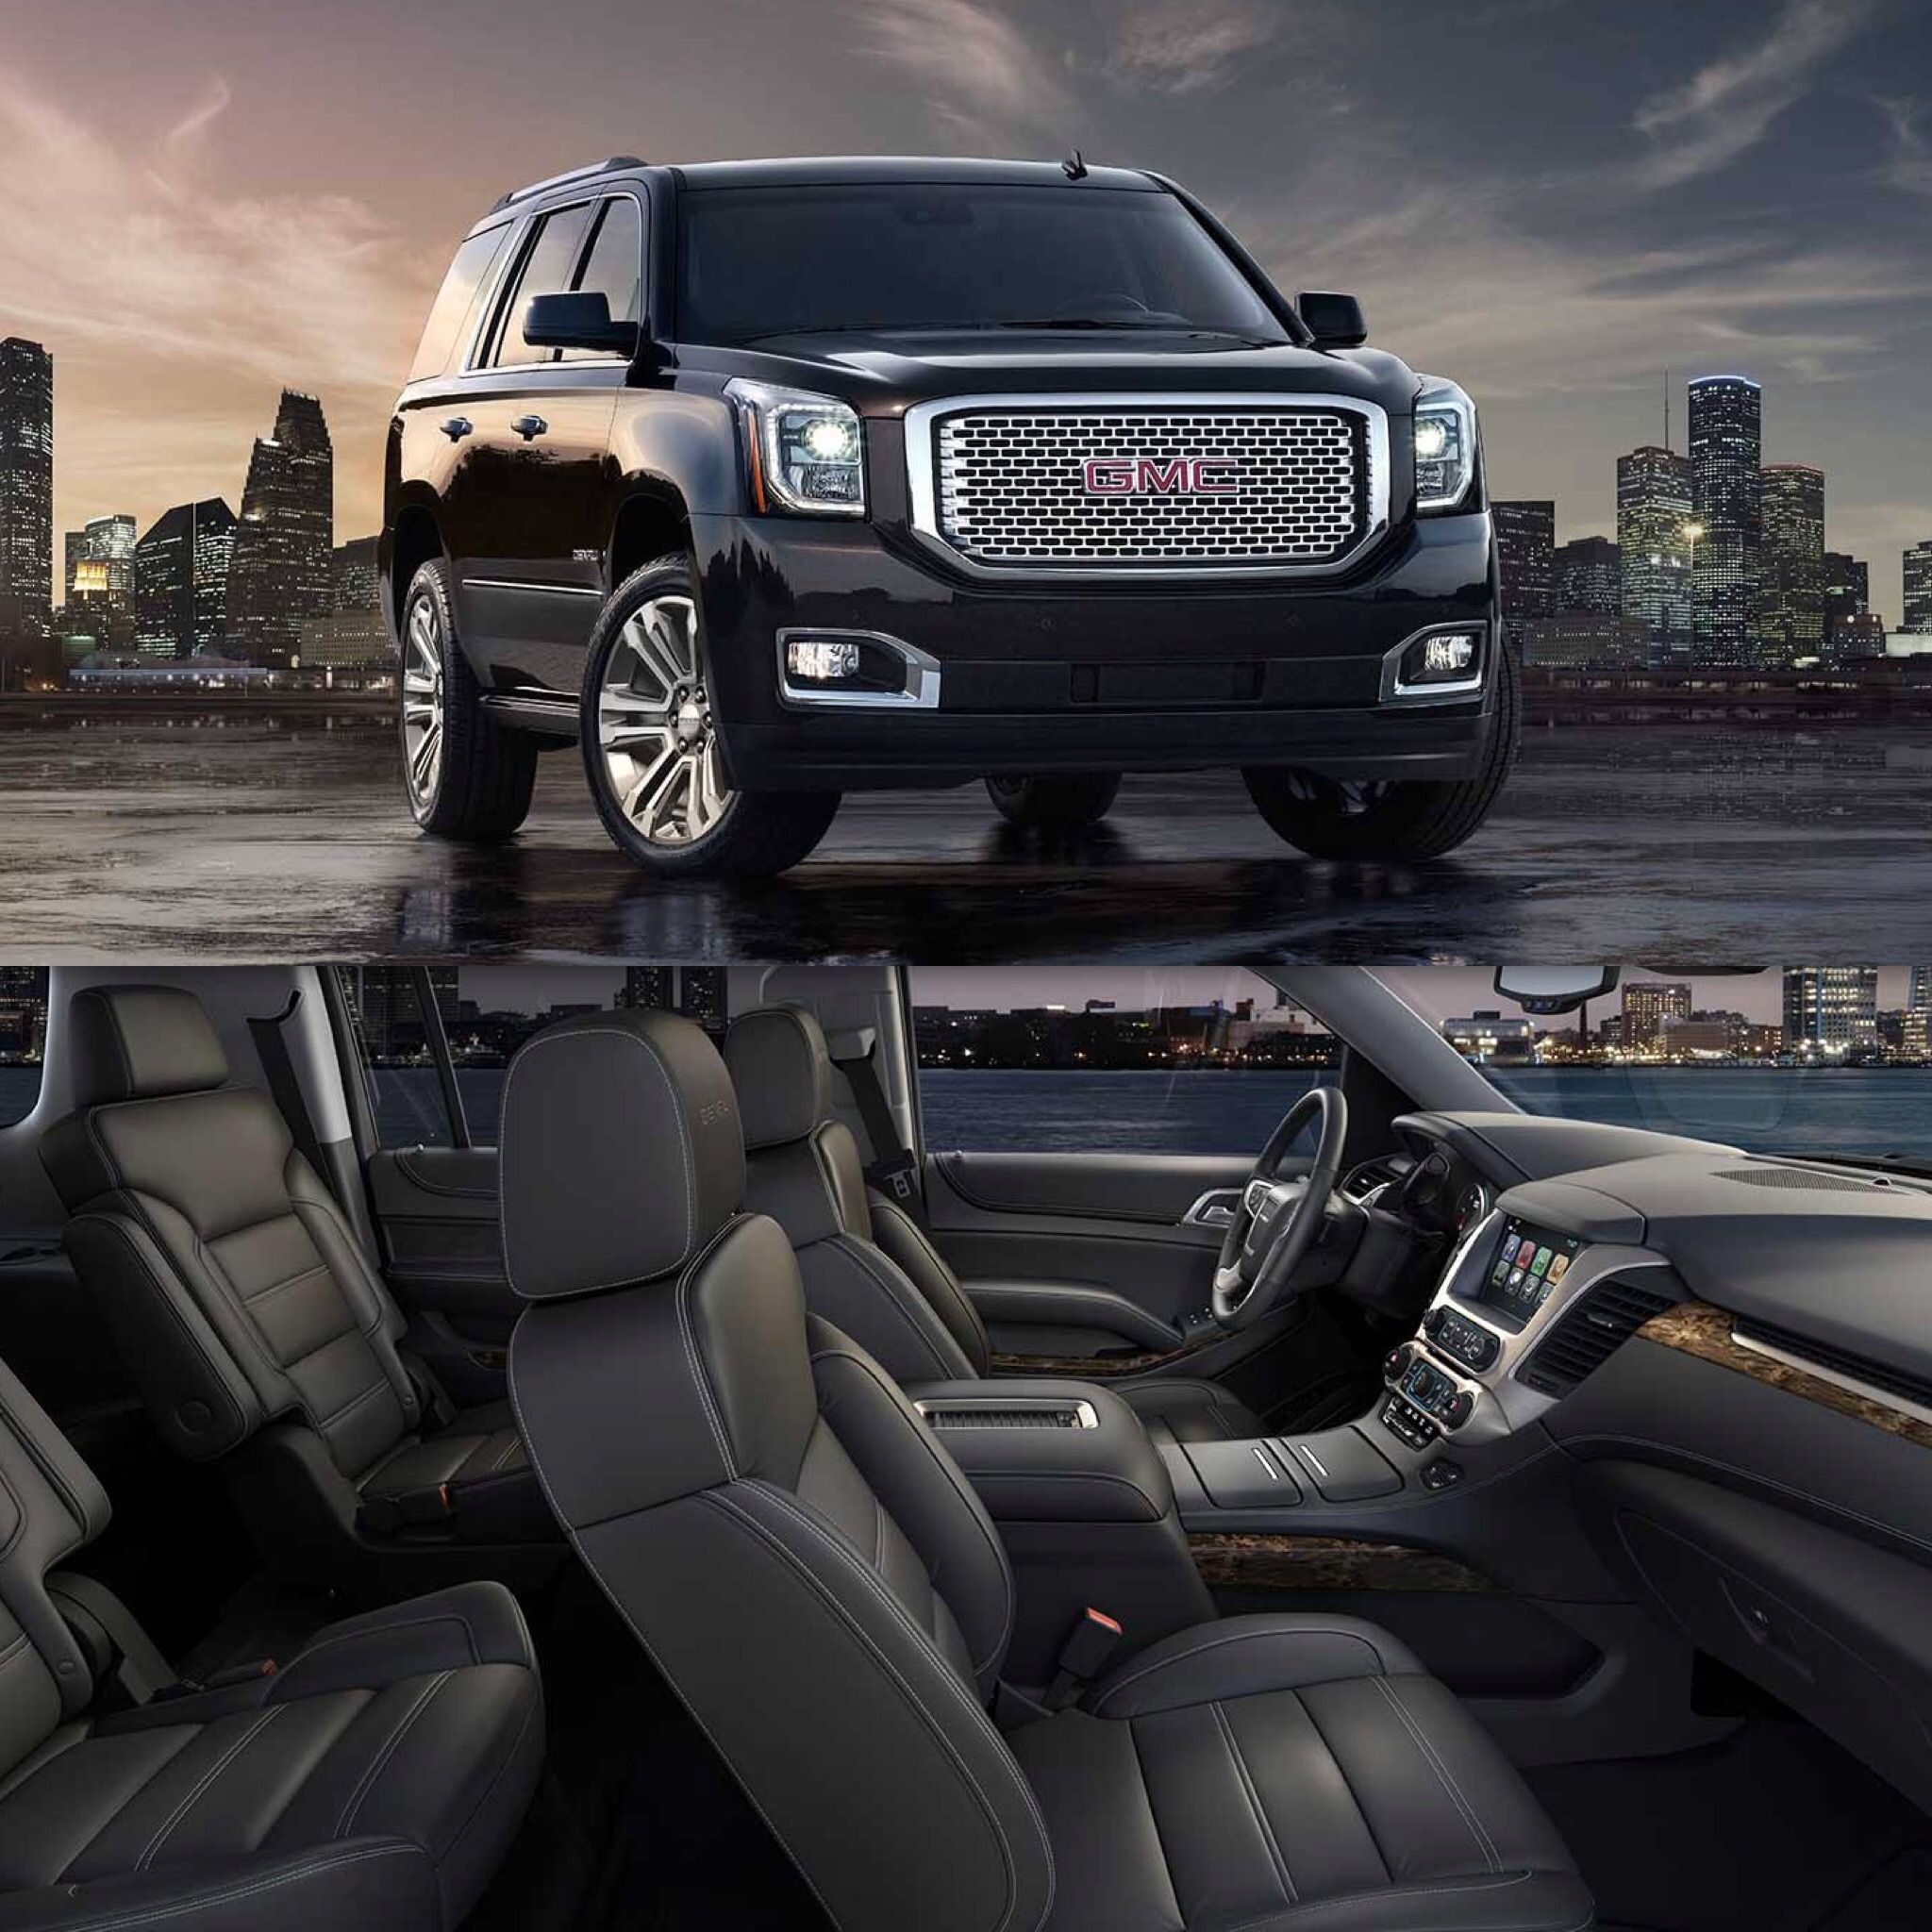 The Gmc Yukon Denali Isn T Just A Full Size Suv It S An Experience Learn More About Our Oem Quality Custom Car Mats At Shop Ggbaile Suv Cars Suv Custom Cars